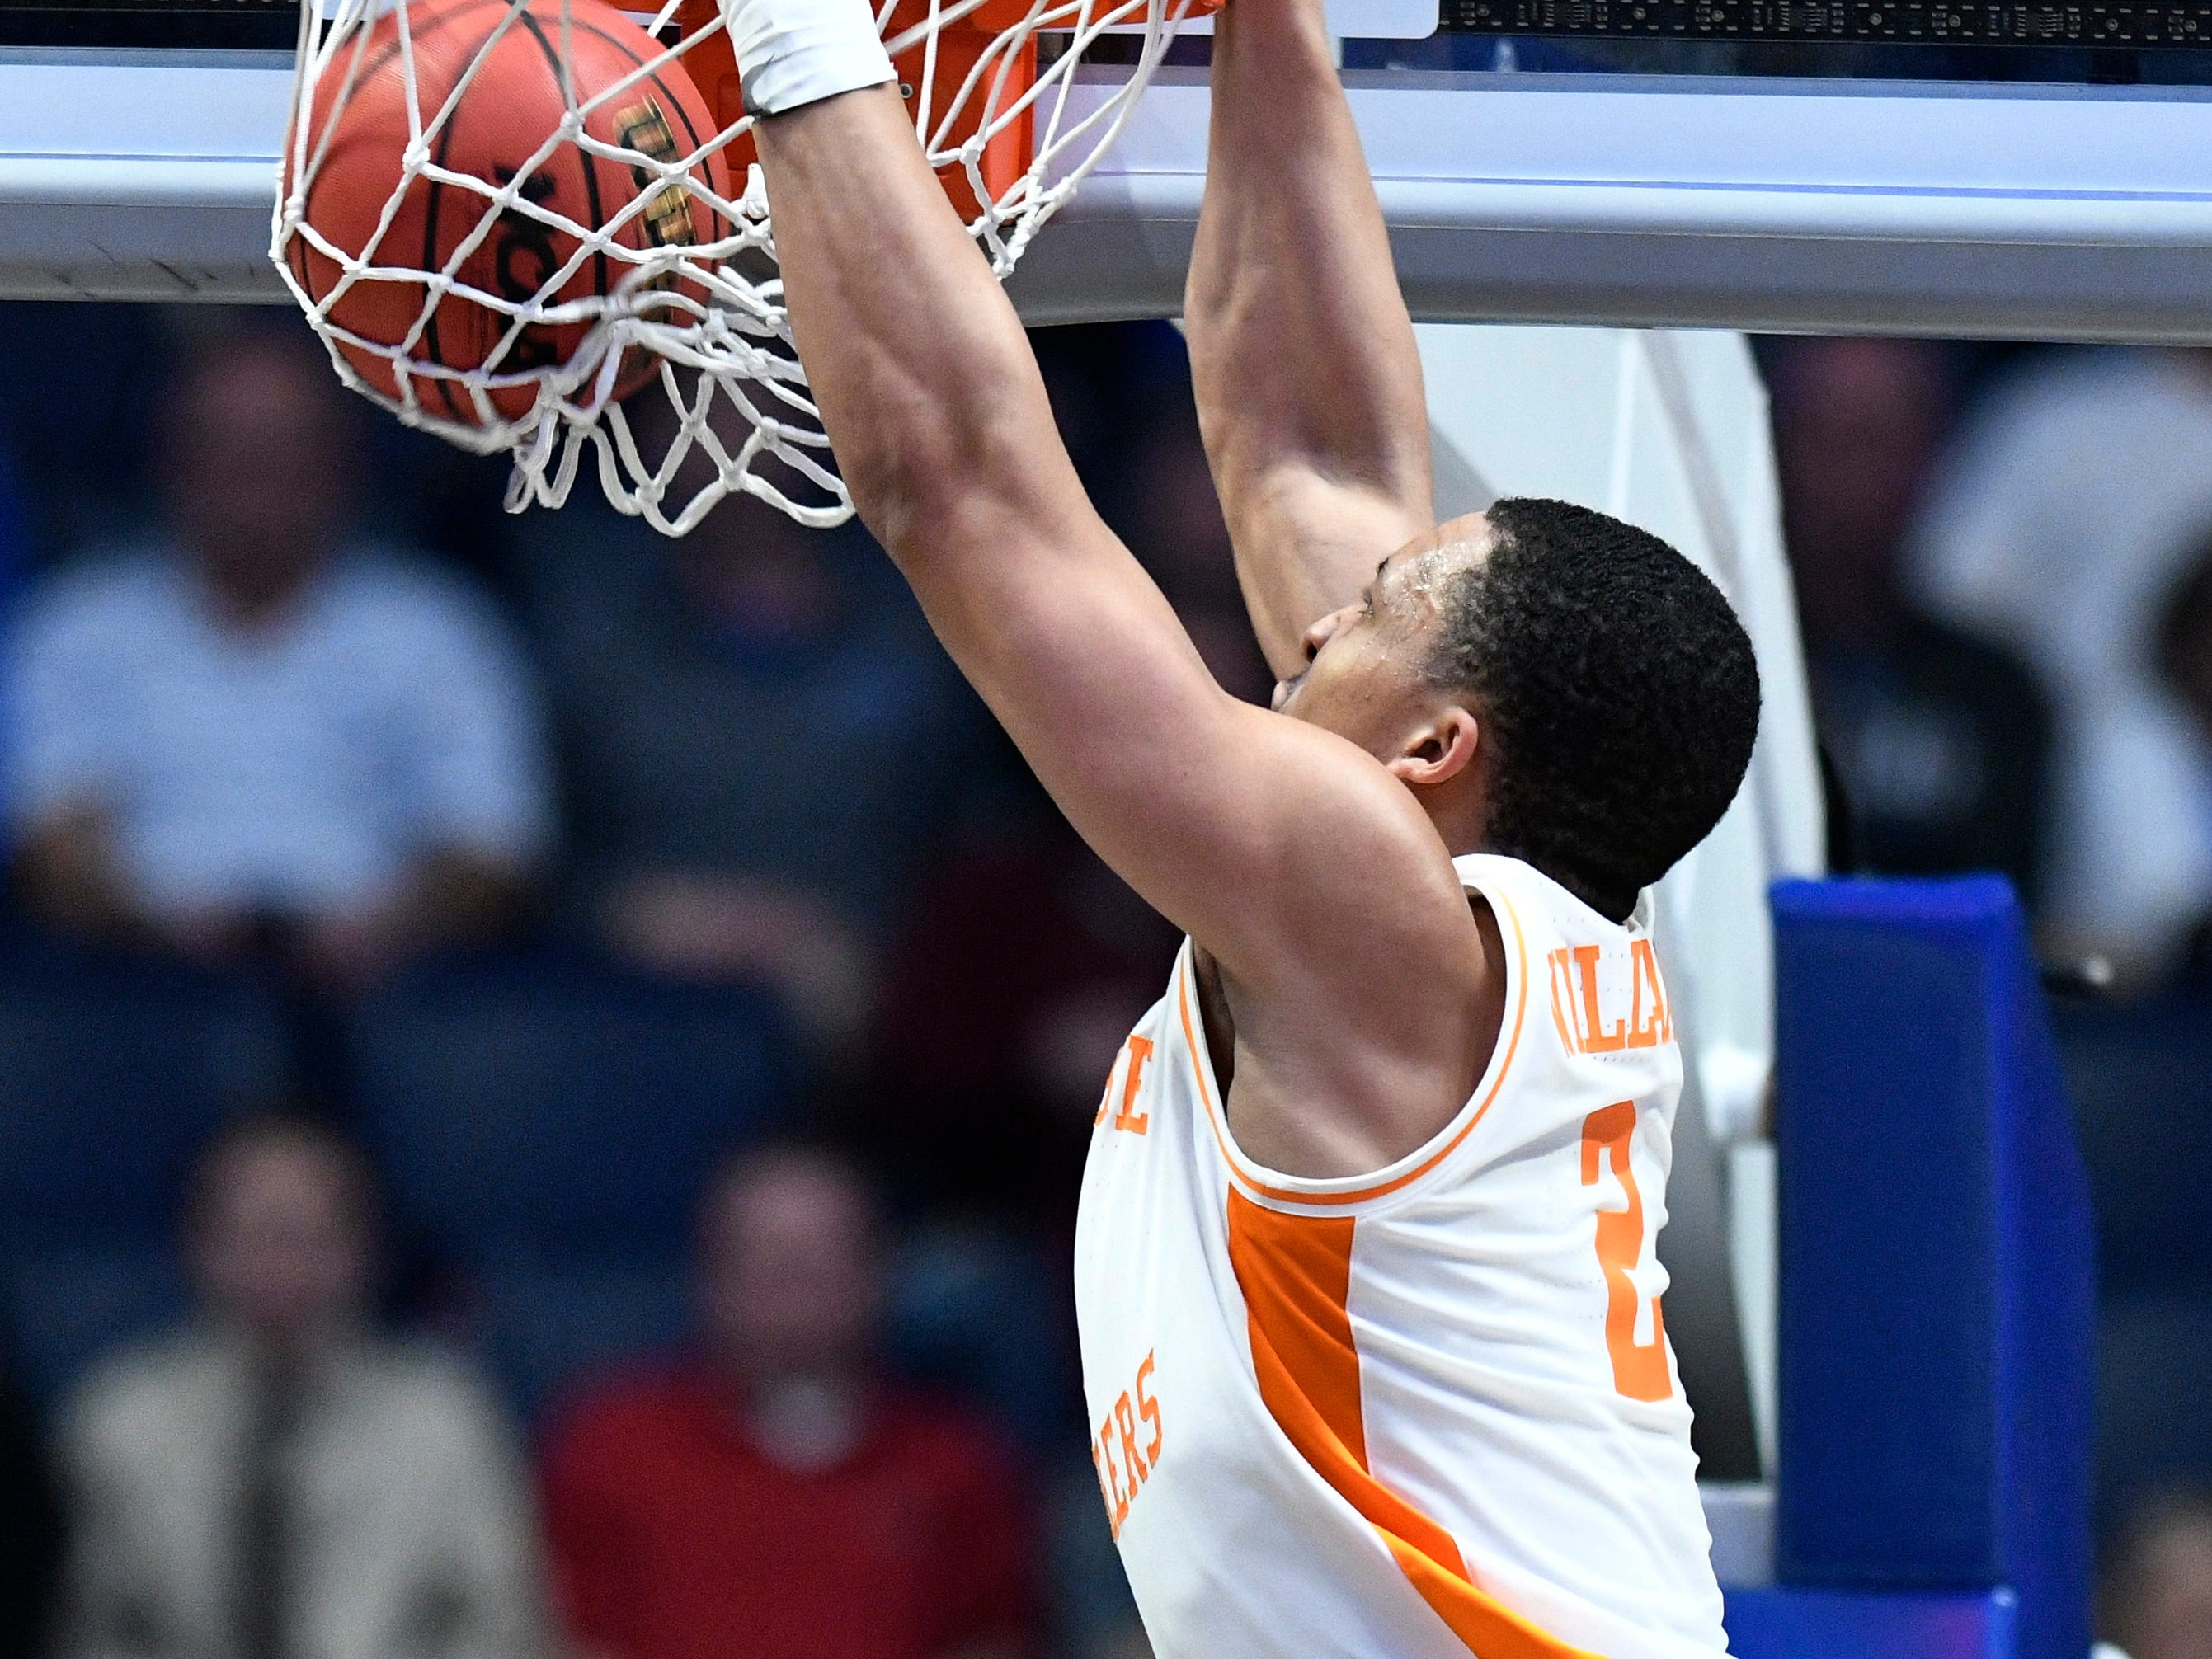 Tennessee forward Grant Williams (2) dunks during the second half of the SEC Men's Basketball Tournament game against Mississippi State at Bridgestone Arena in Nashville, Tenn., Friday, March 15, 2019.